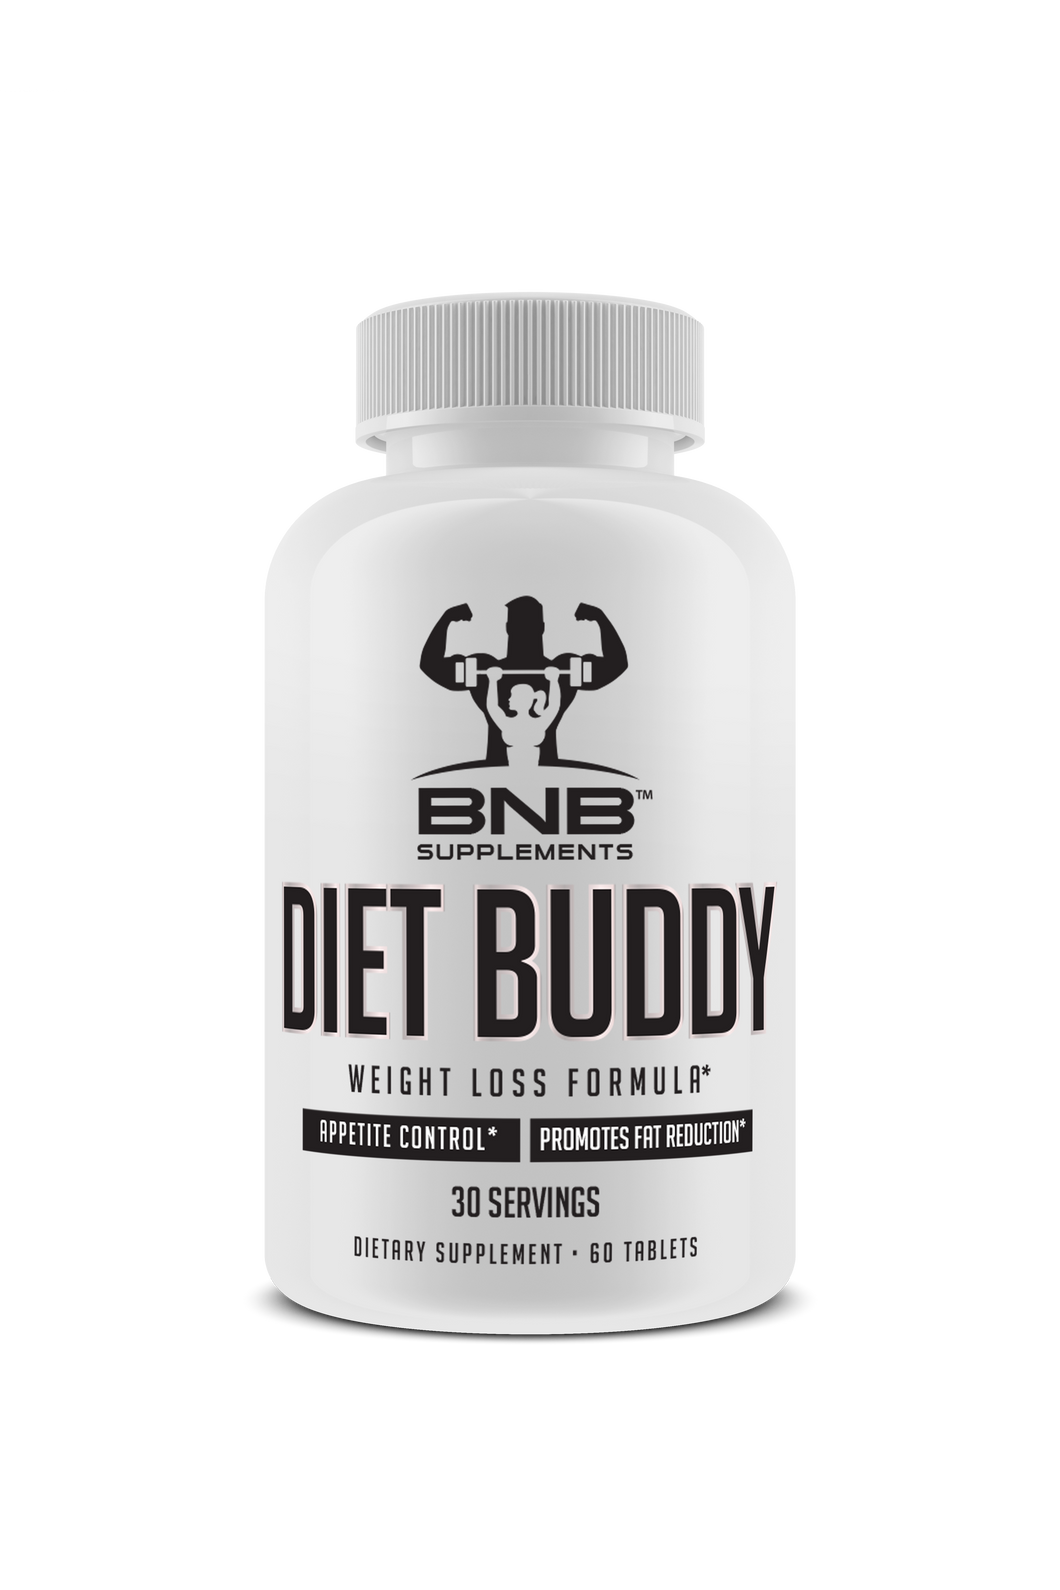 Diet Buddy